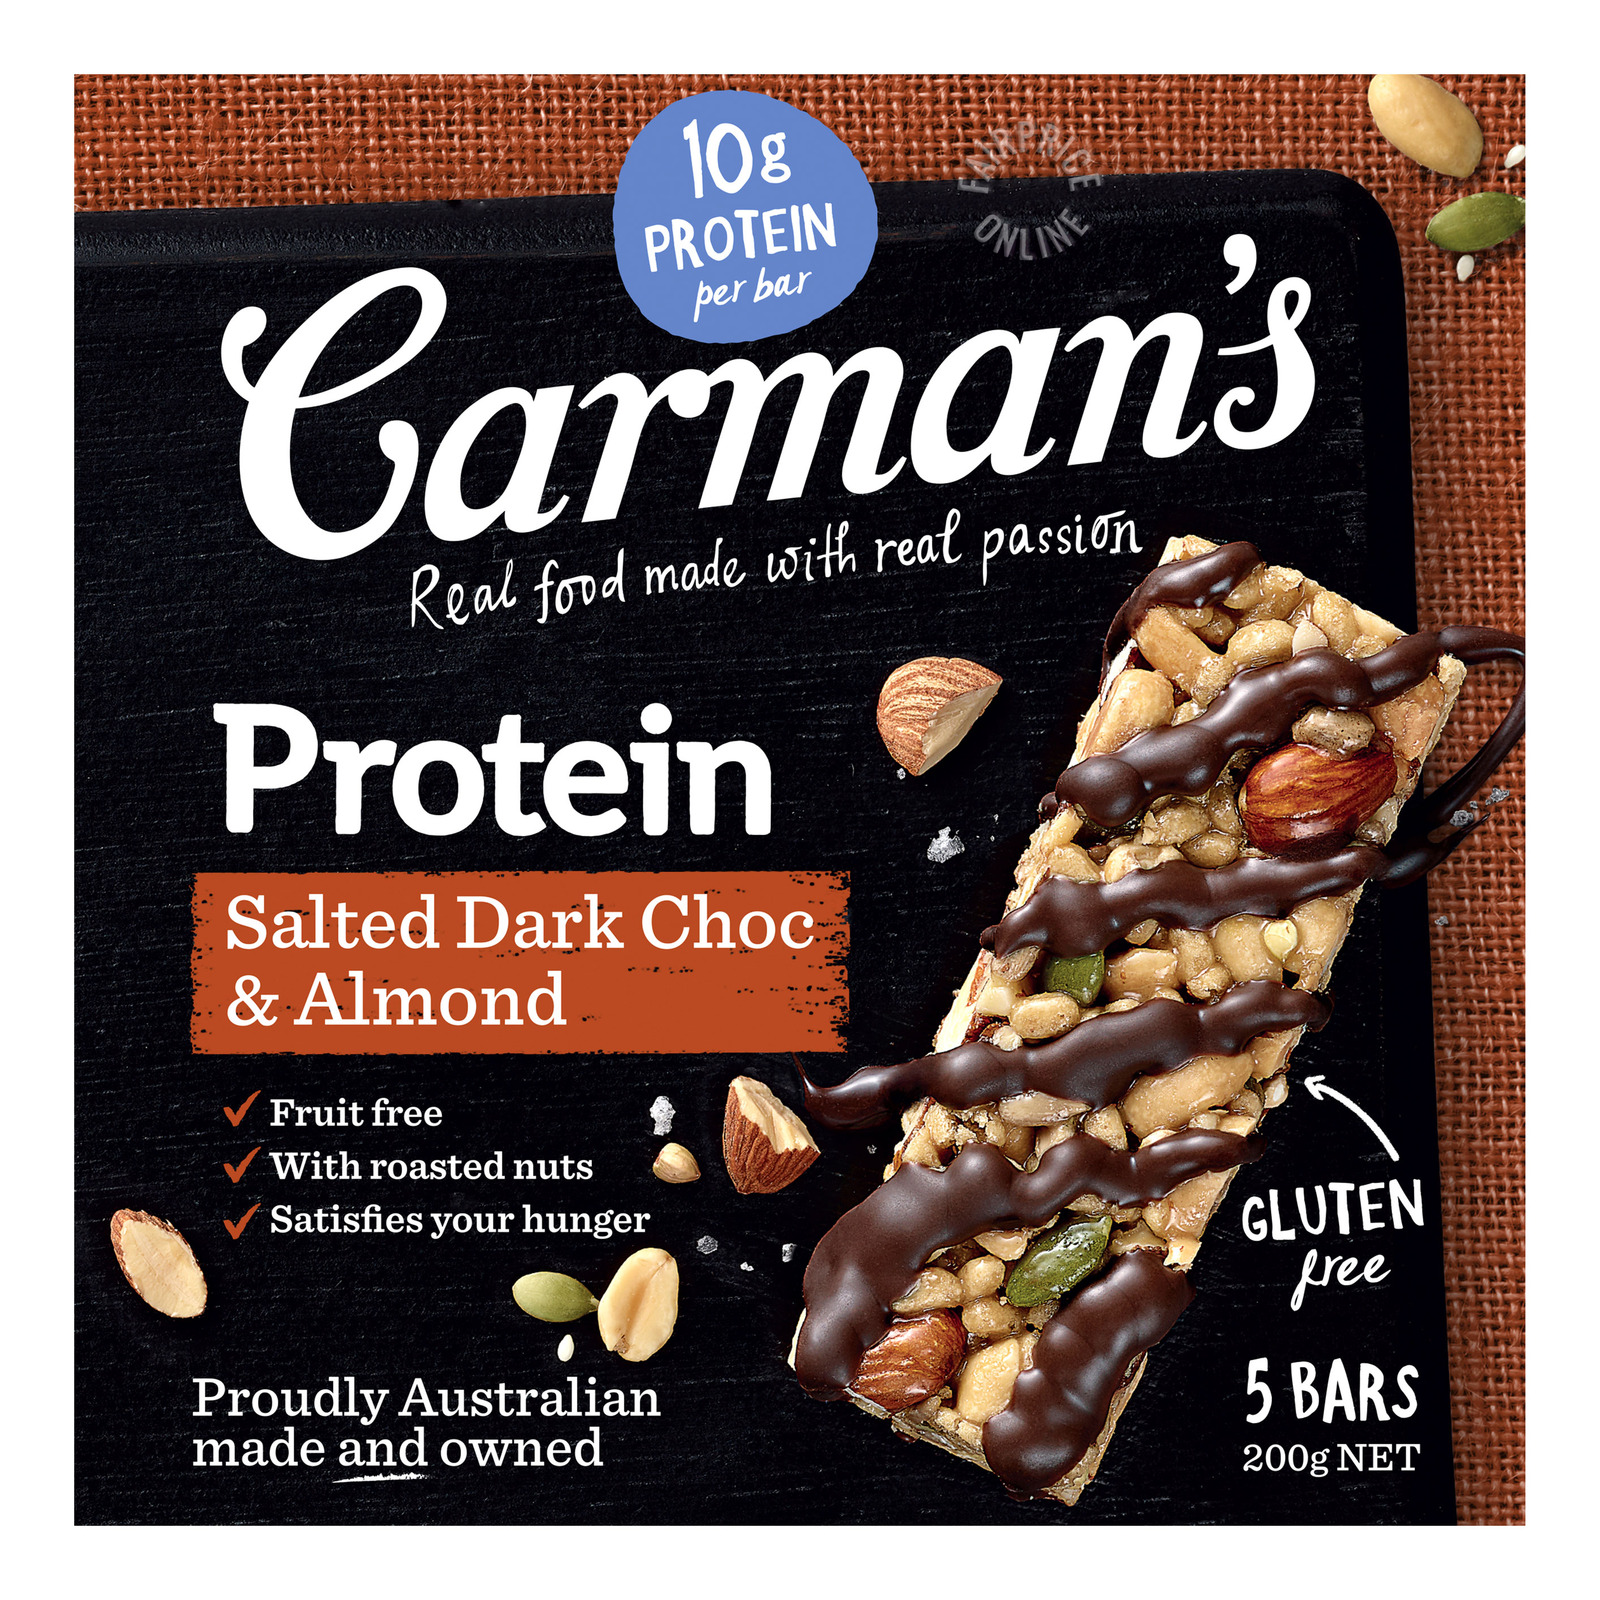 Carman's Gourmet Protein Bars - Salted Dark Choc & Almond